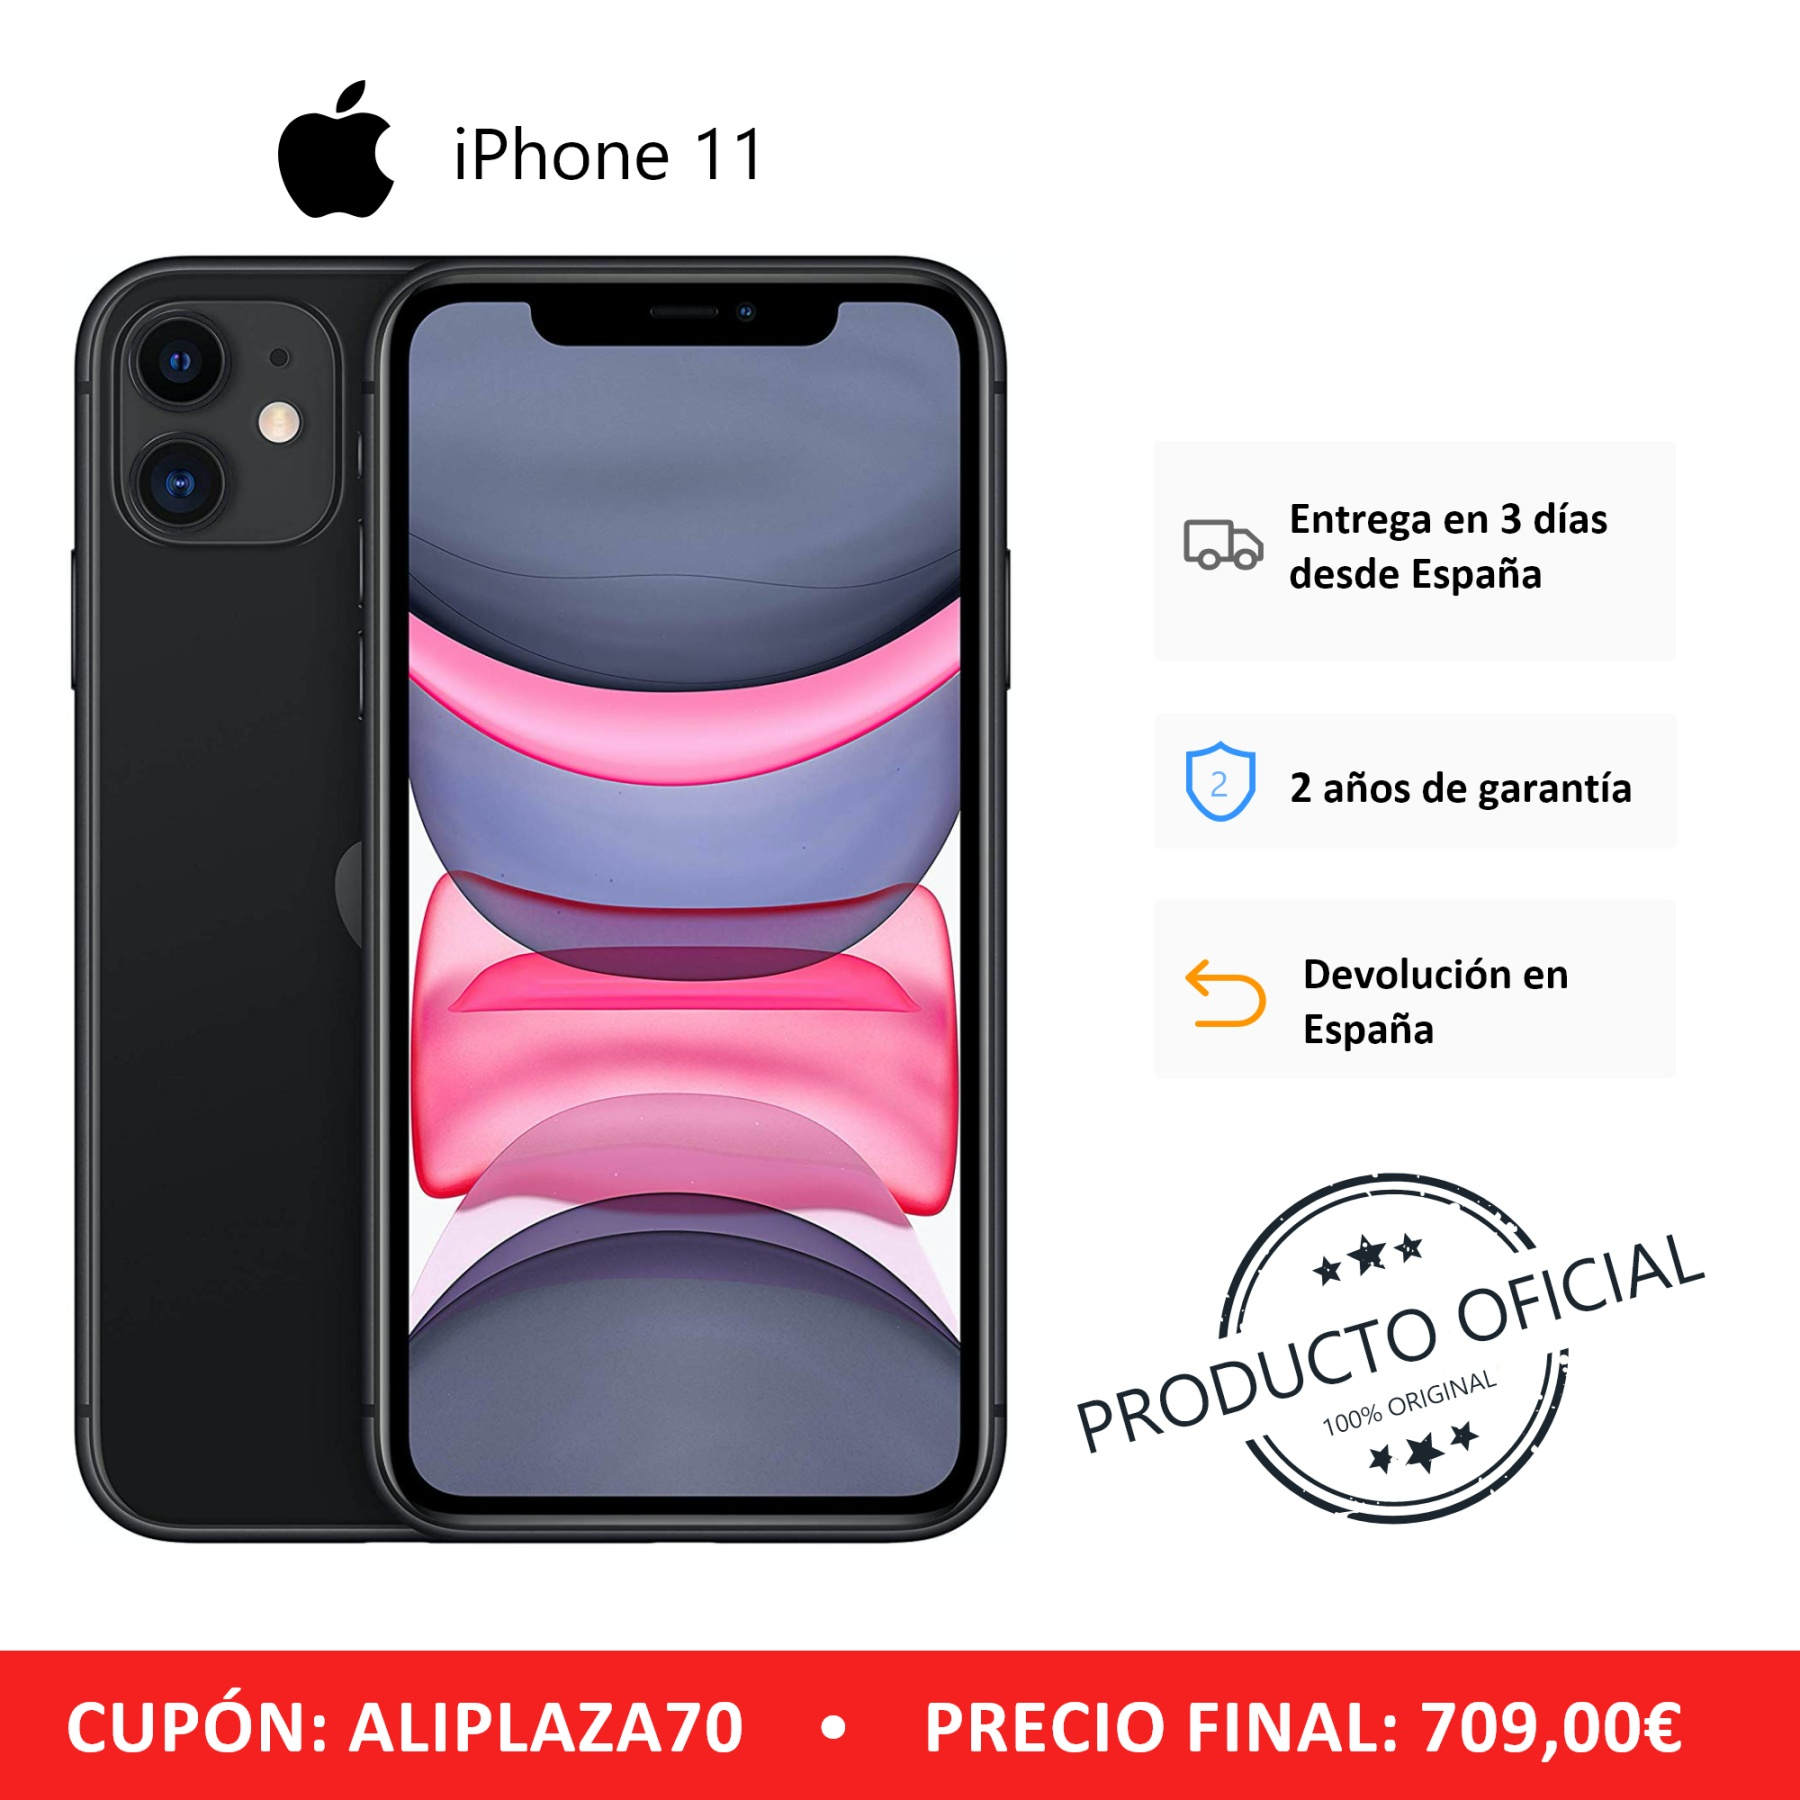 Apple iPhone 11 Smartphone (64 GB ROM, 4 GB RAM, Black Color, 12 MP Rear Camera, 12 MP Selfie Camera, 6.1 Screen, iOS System, New, Free, Cheap) [Mobile Phone EU Version] Plaza España, Mobile, Mobile, Mobile Phone Free image